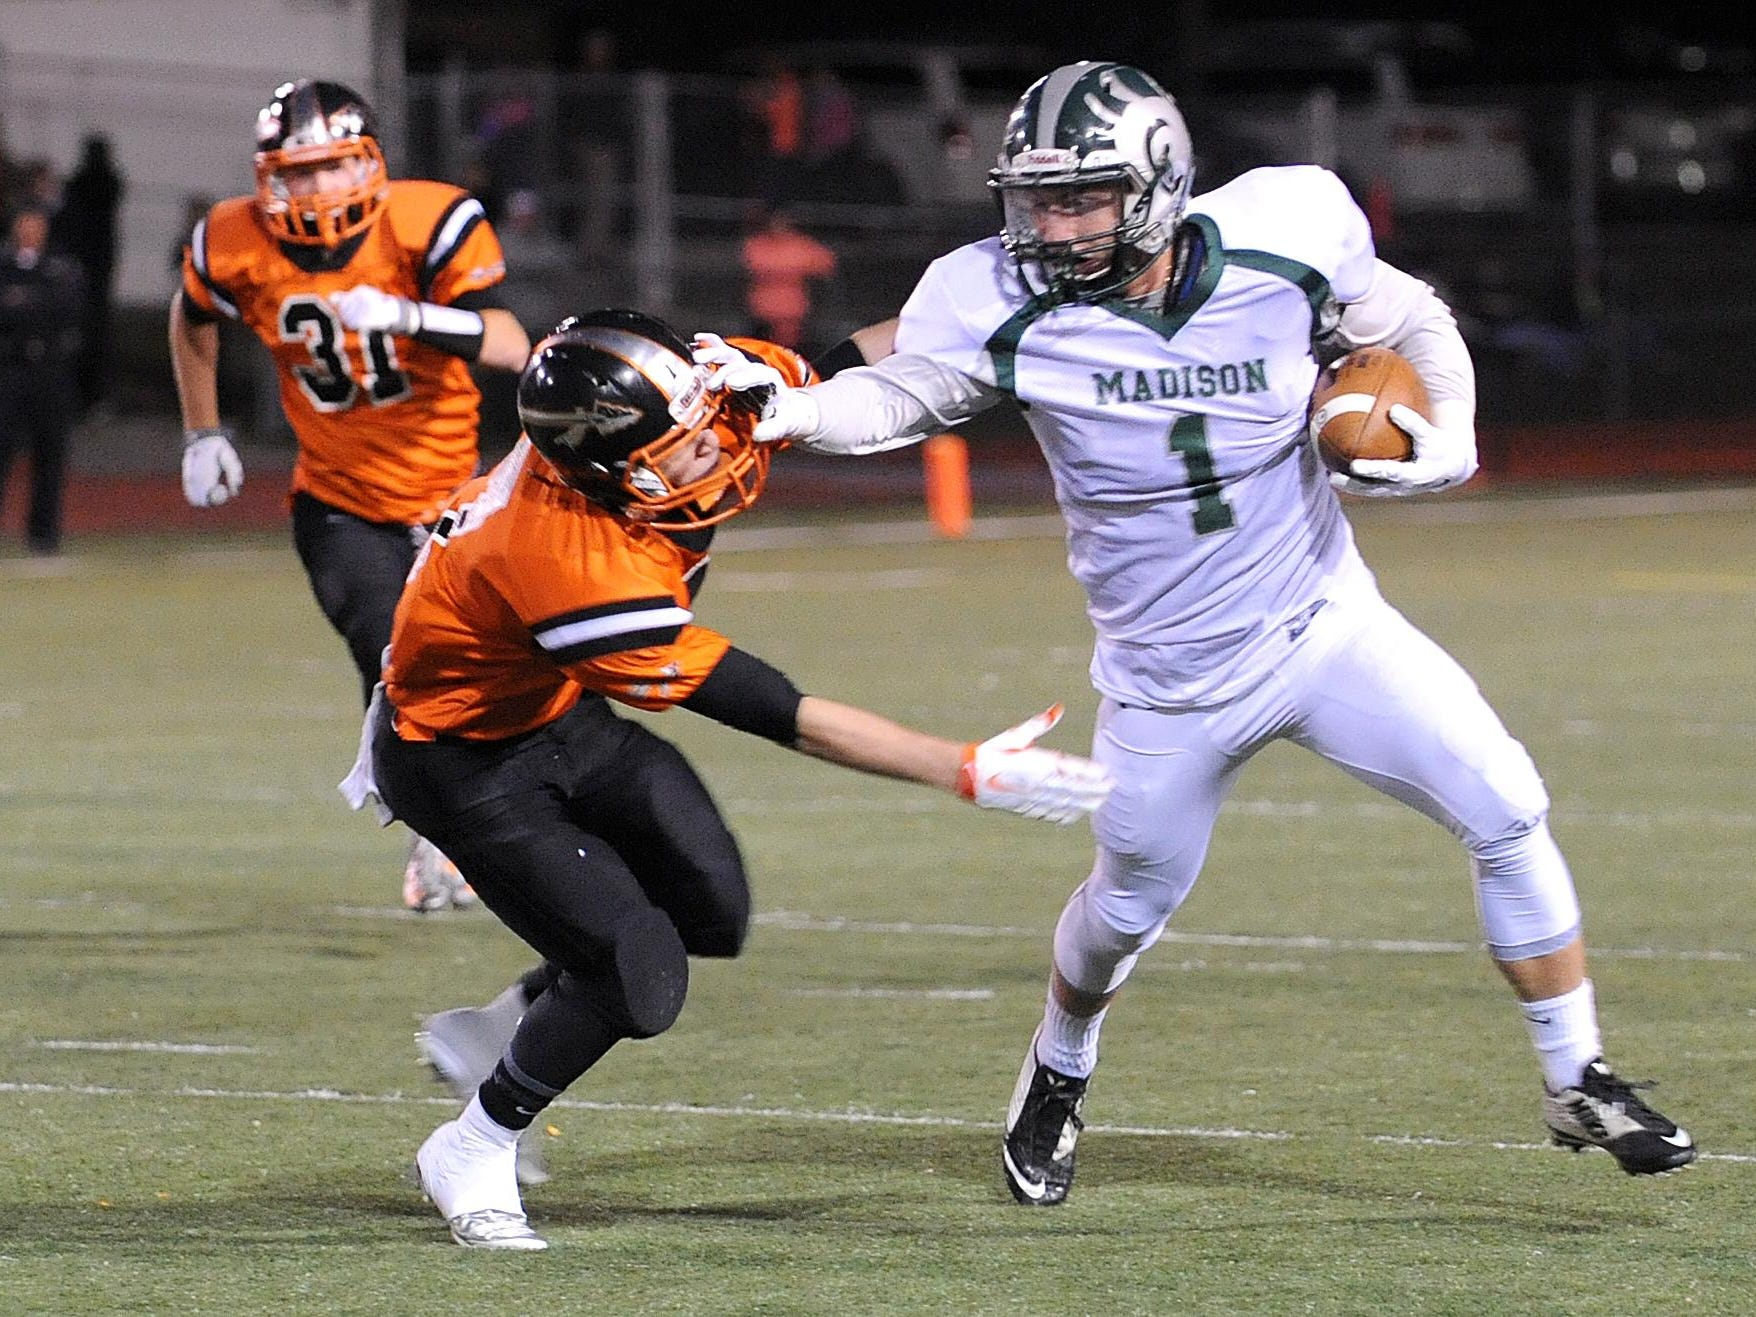 Madison's Billy Buckley stiff arms an Ashland player during their game Friday night.